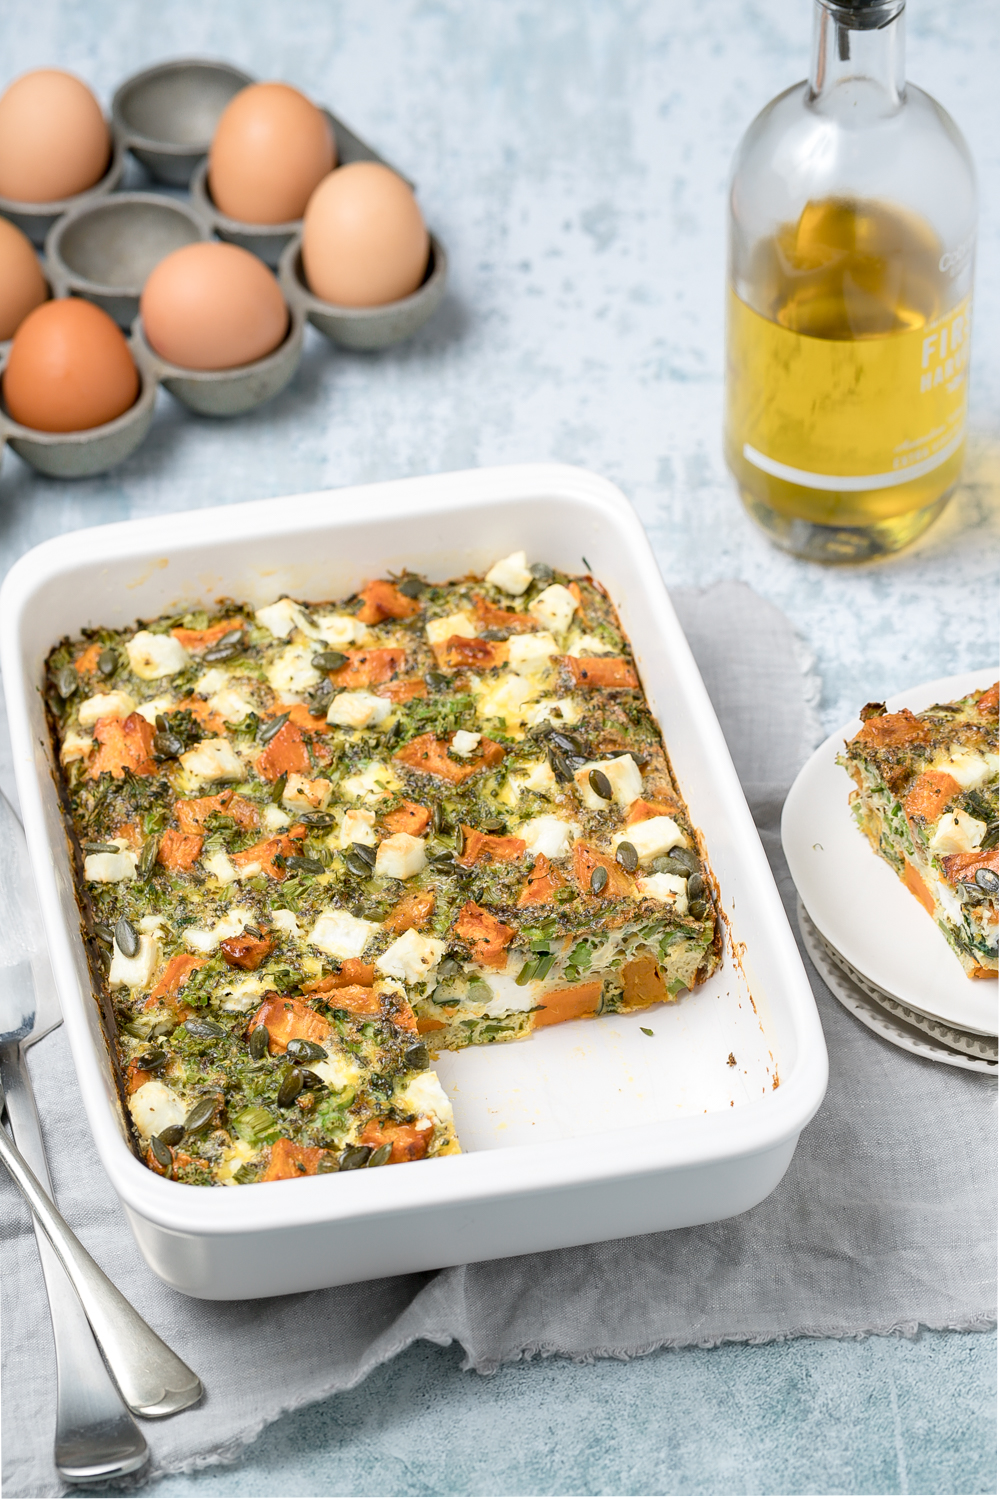 White rectangular baking dish with sweet potato, broccoli and feta frittata. Eggs and olive oil bottle in background